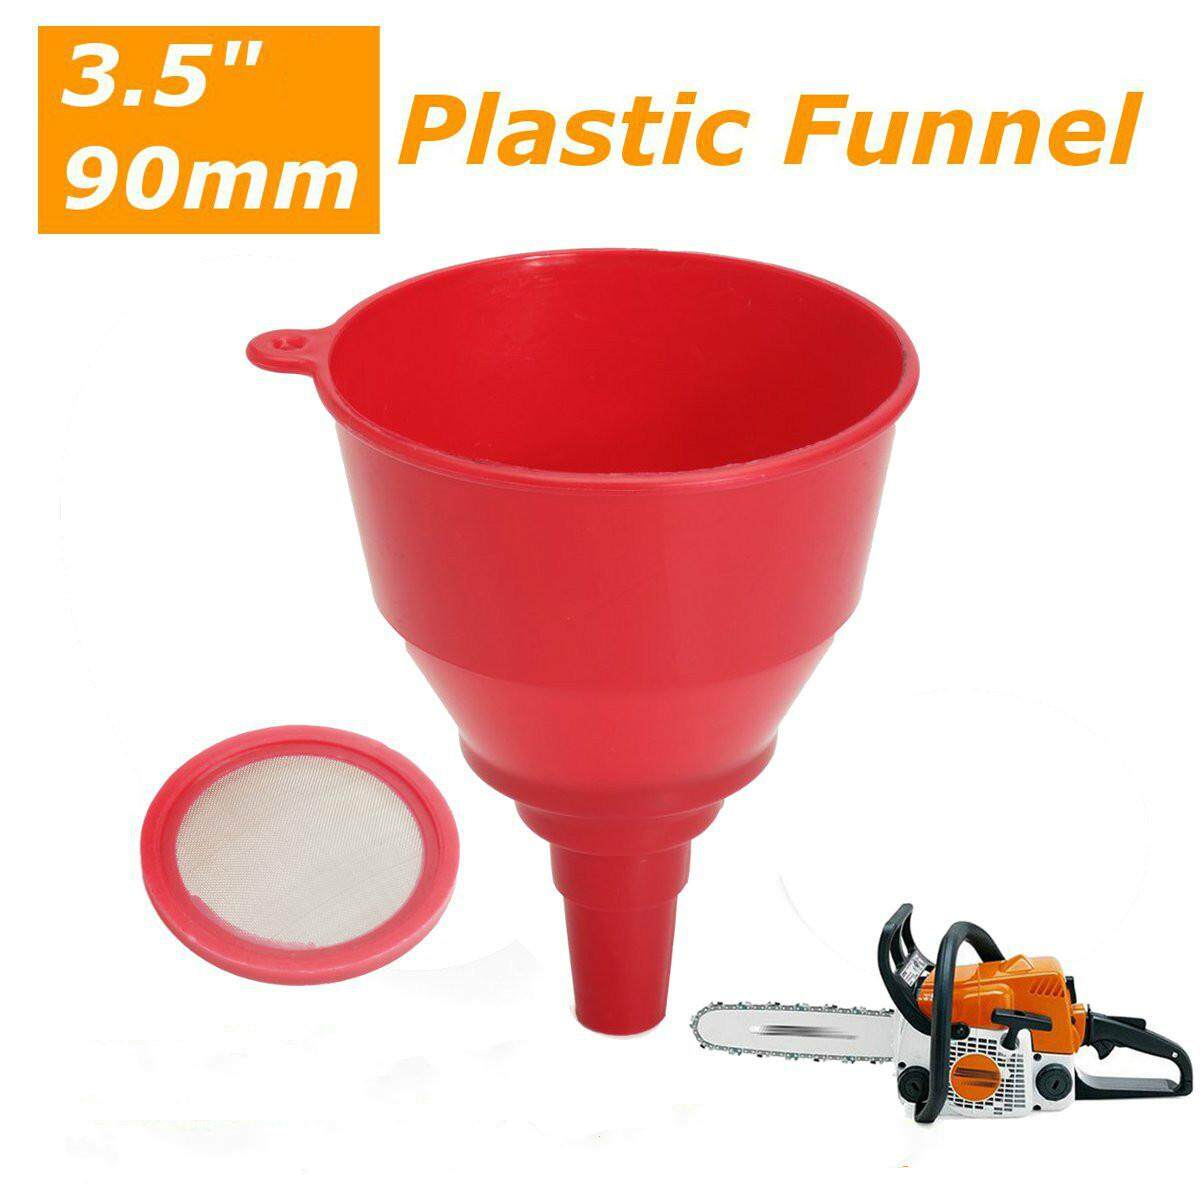 3.5 90mm Plastic Funnel For Chainsaw Lawnmower Brushcutter Use